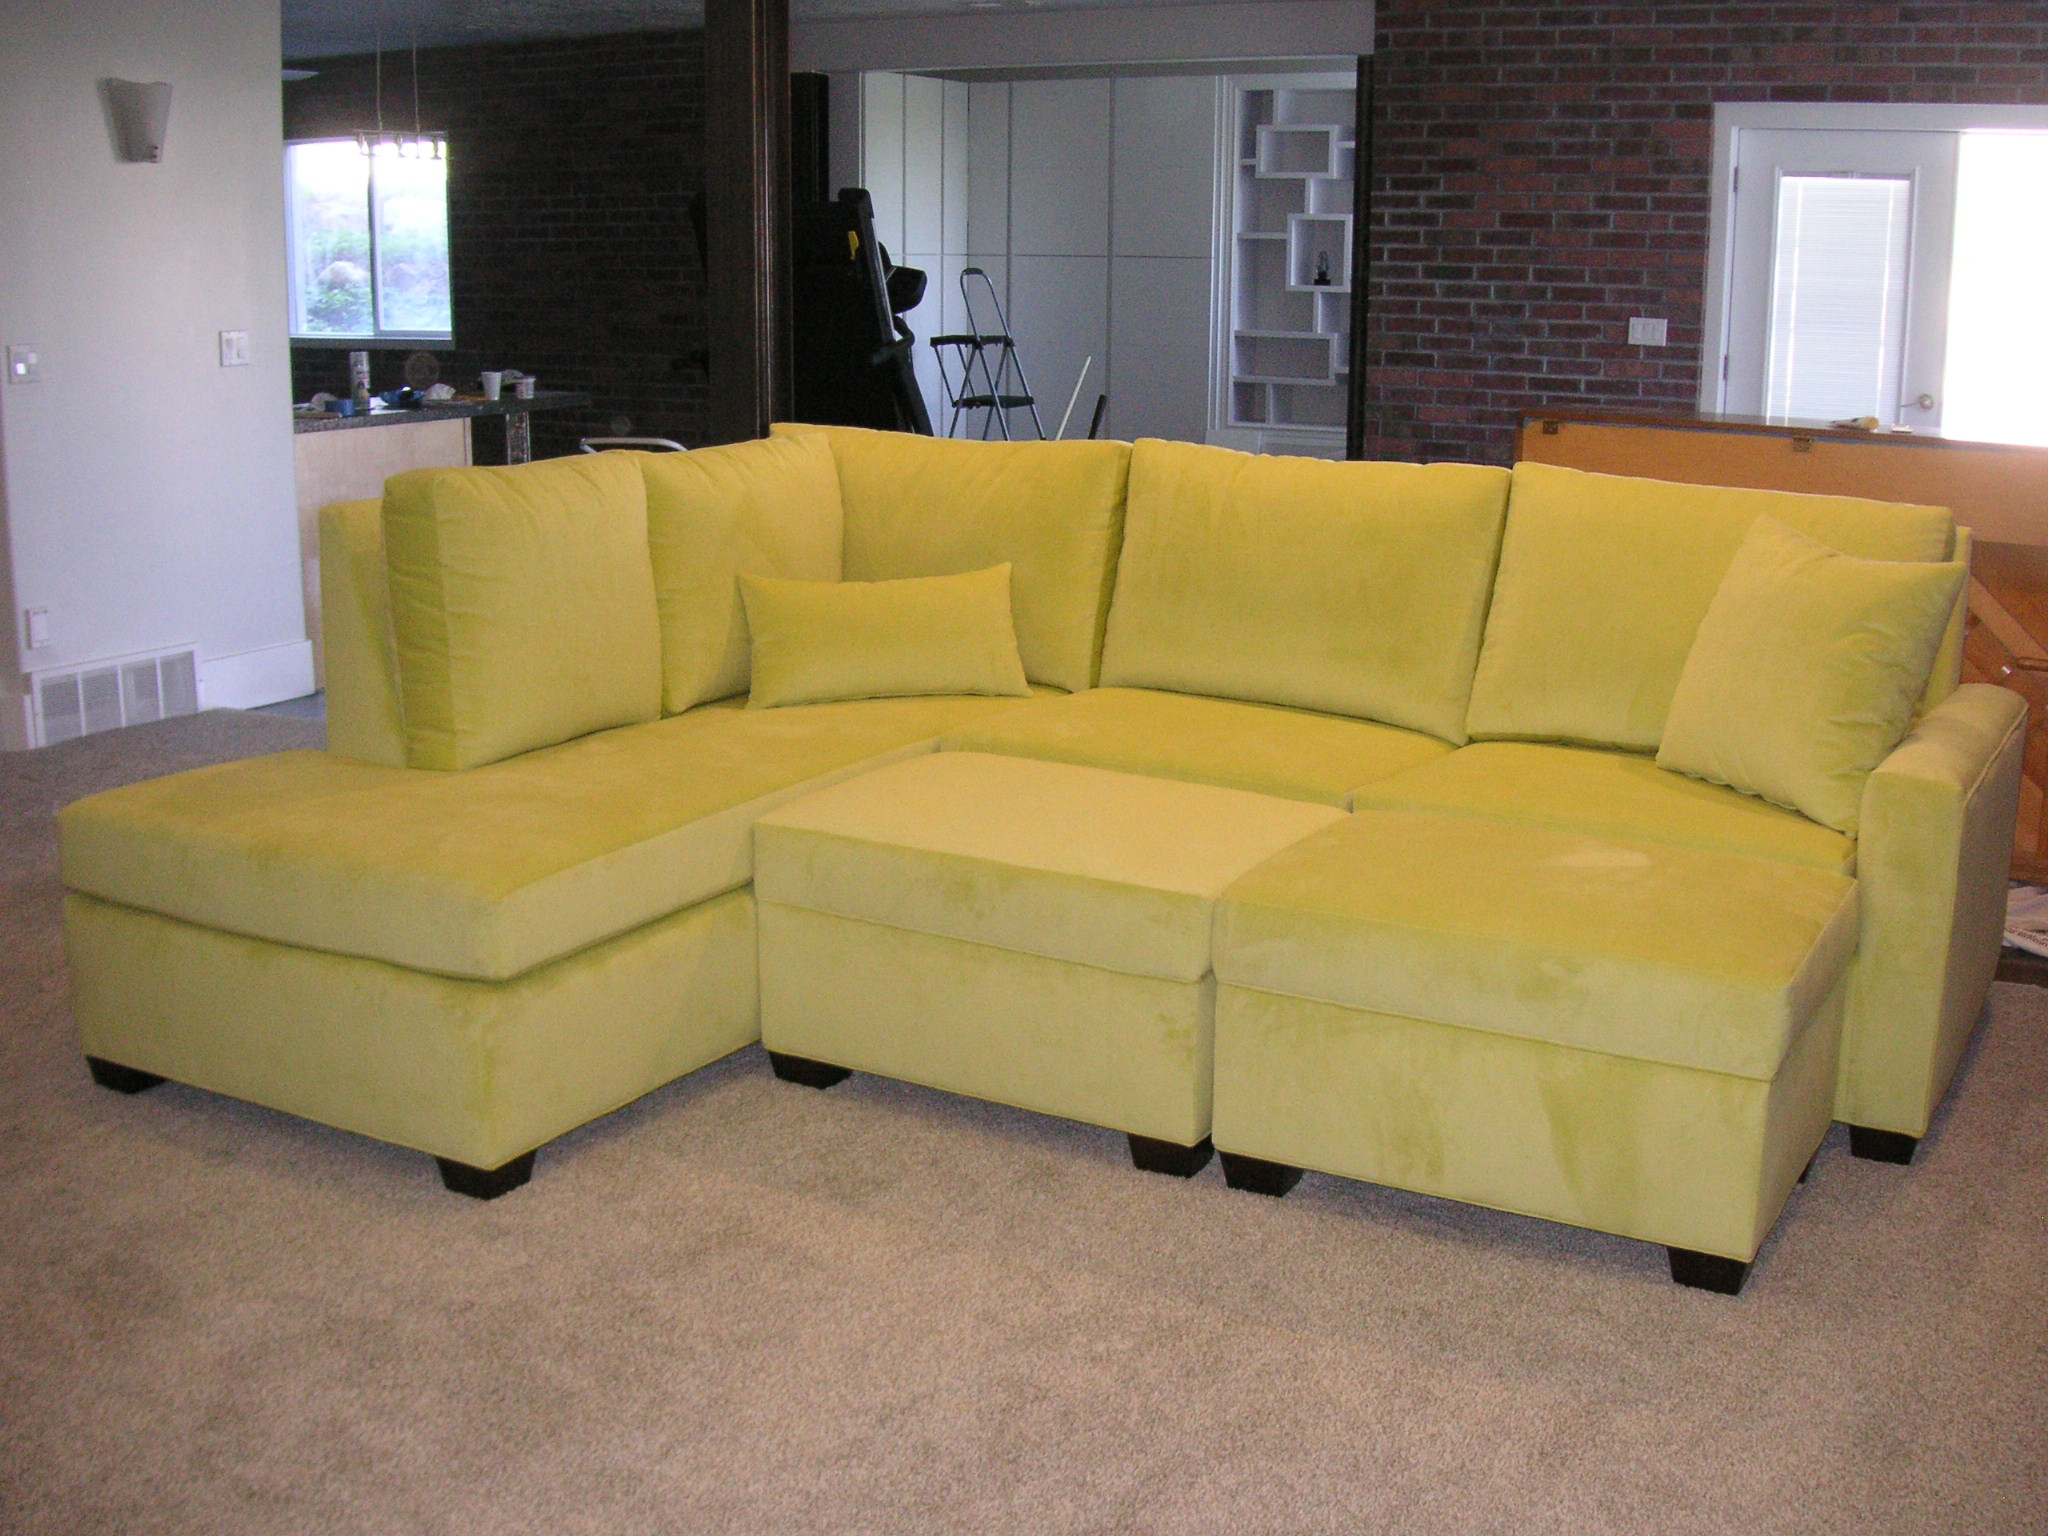 72 Inch Sleeper Sofa 72 Sleeper Sofa Sofa Beds Sleeper